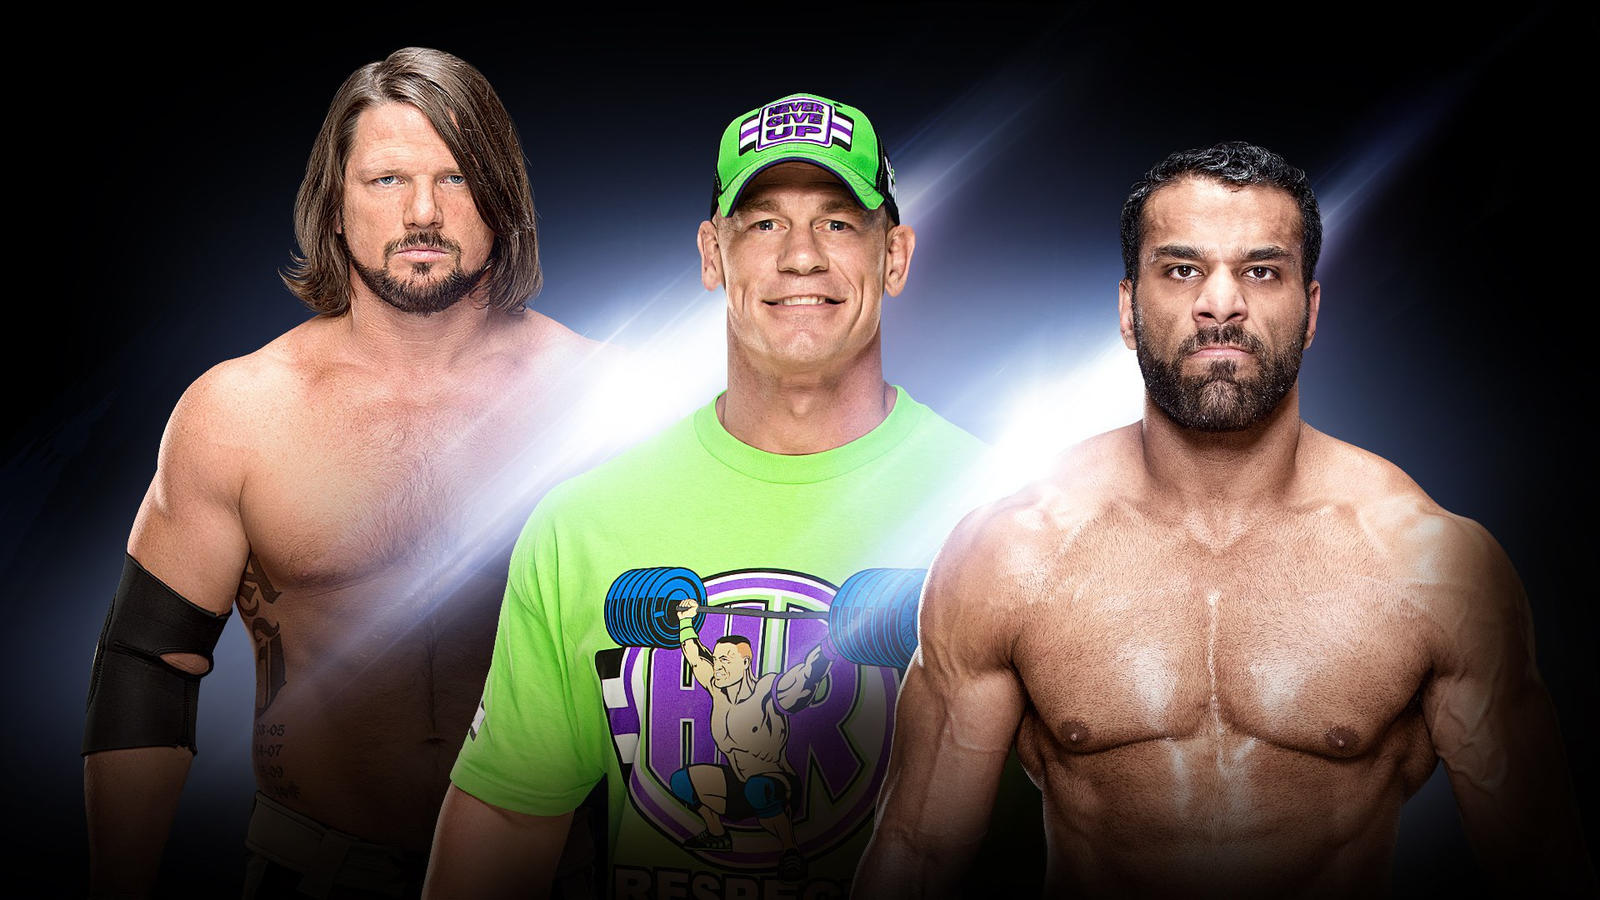 Are John Cena and Rey Mysterio going to wrestle each other at Wrestlemania?